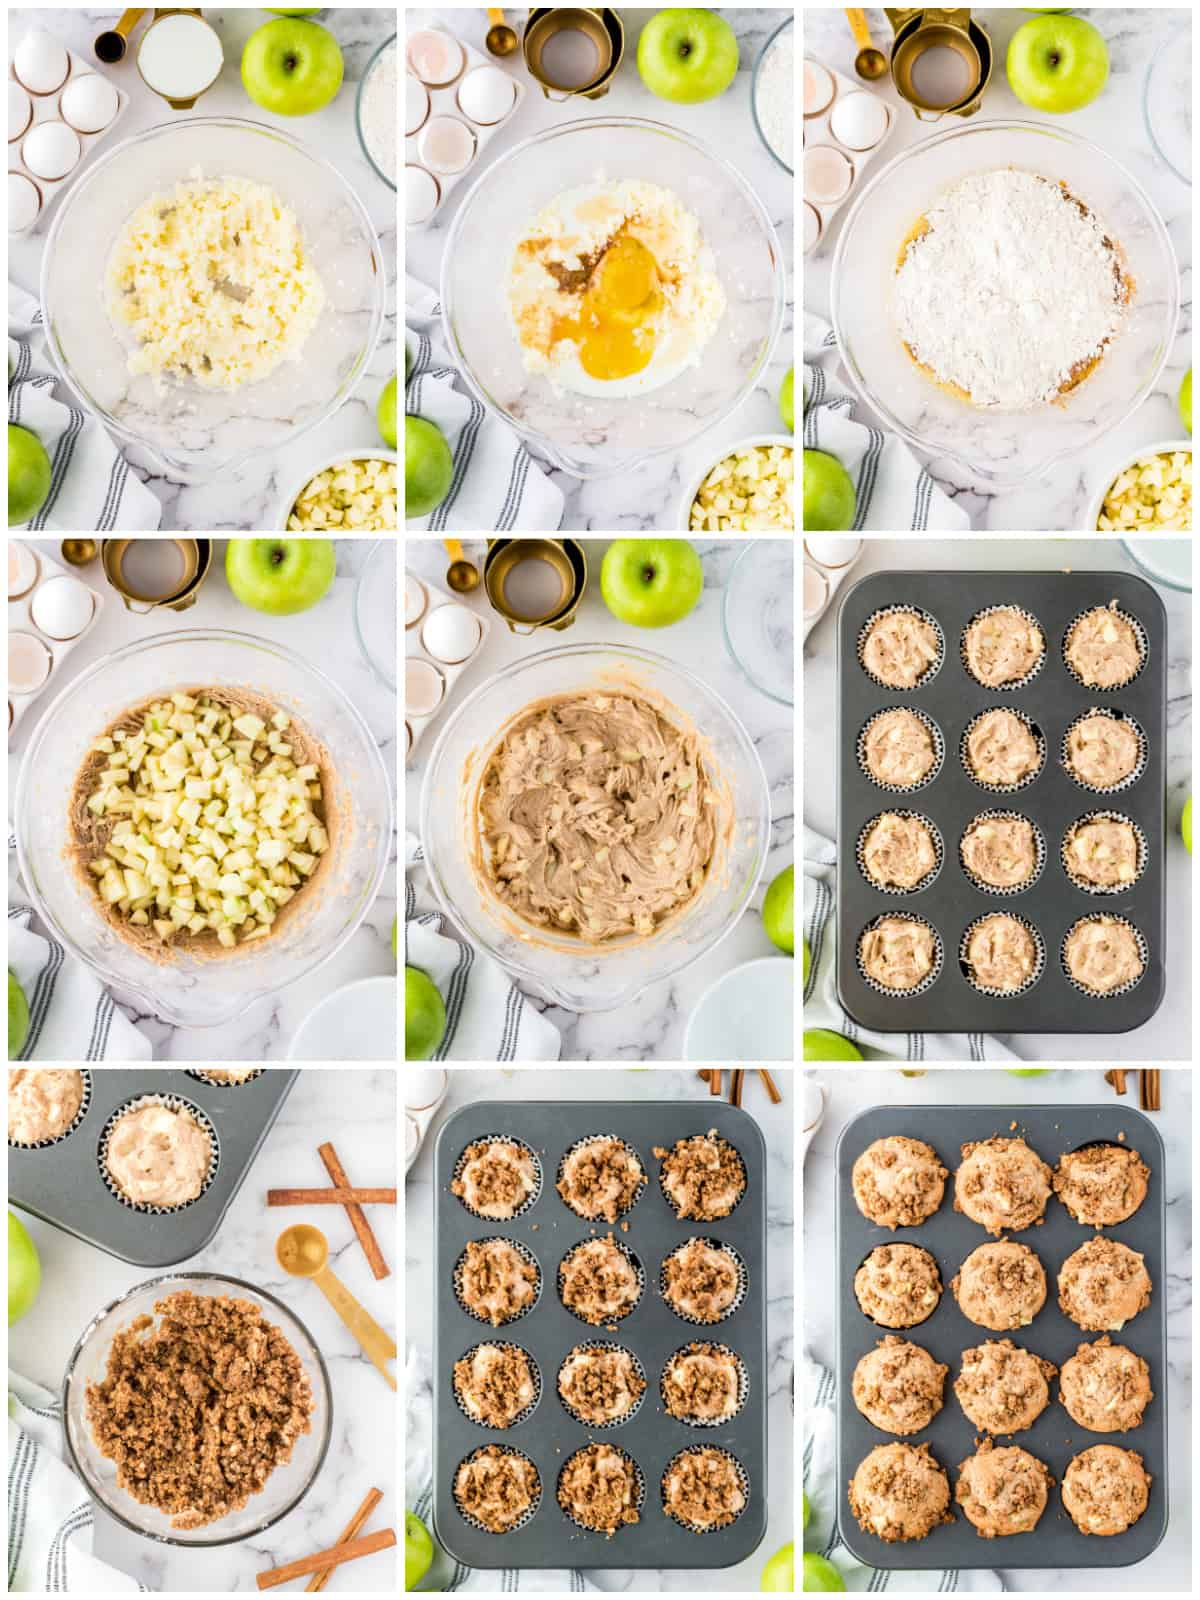 Step by step photos on how to make Apple Cinnamon Muffins.